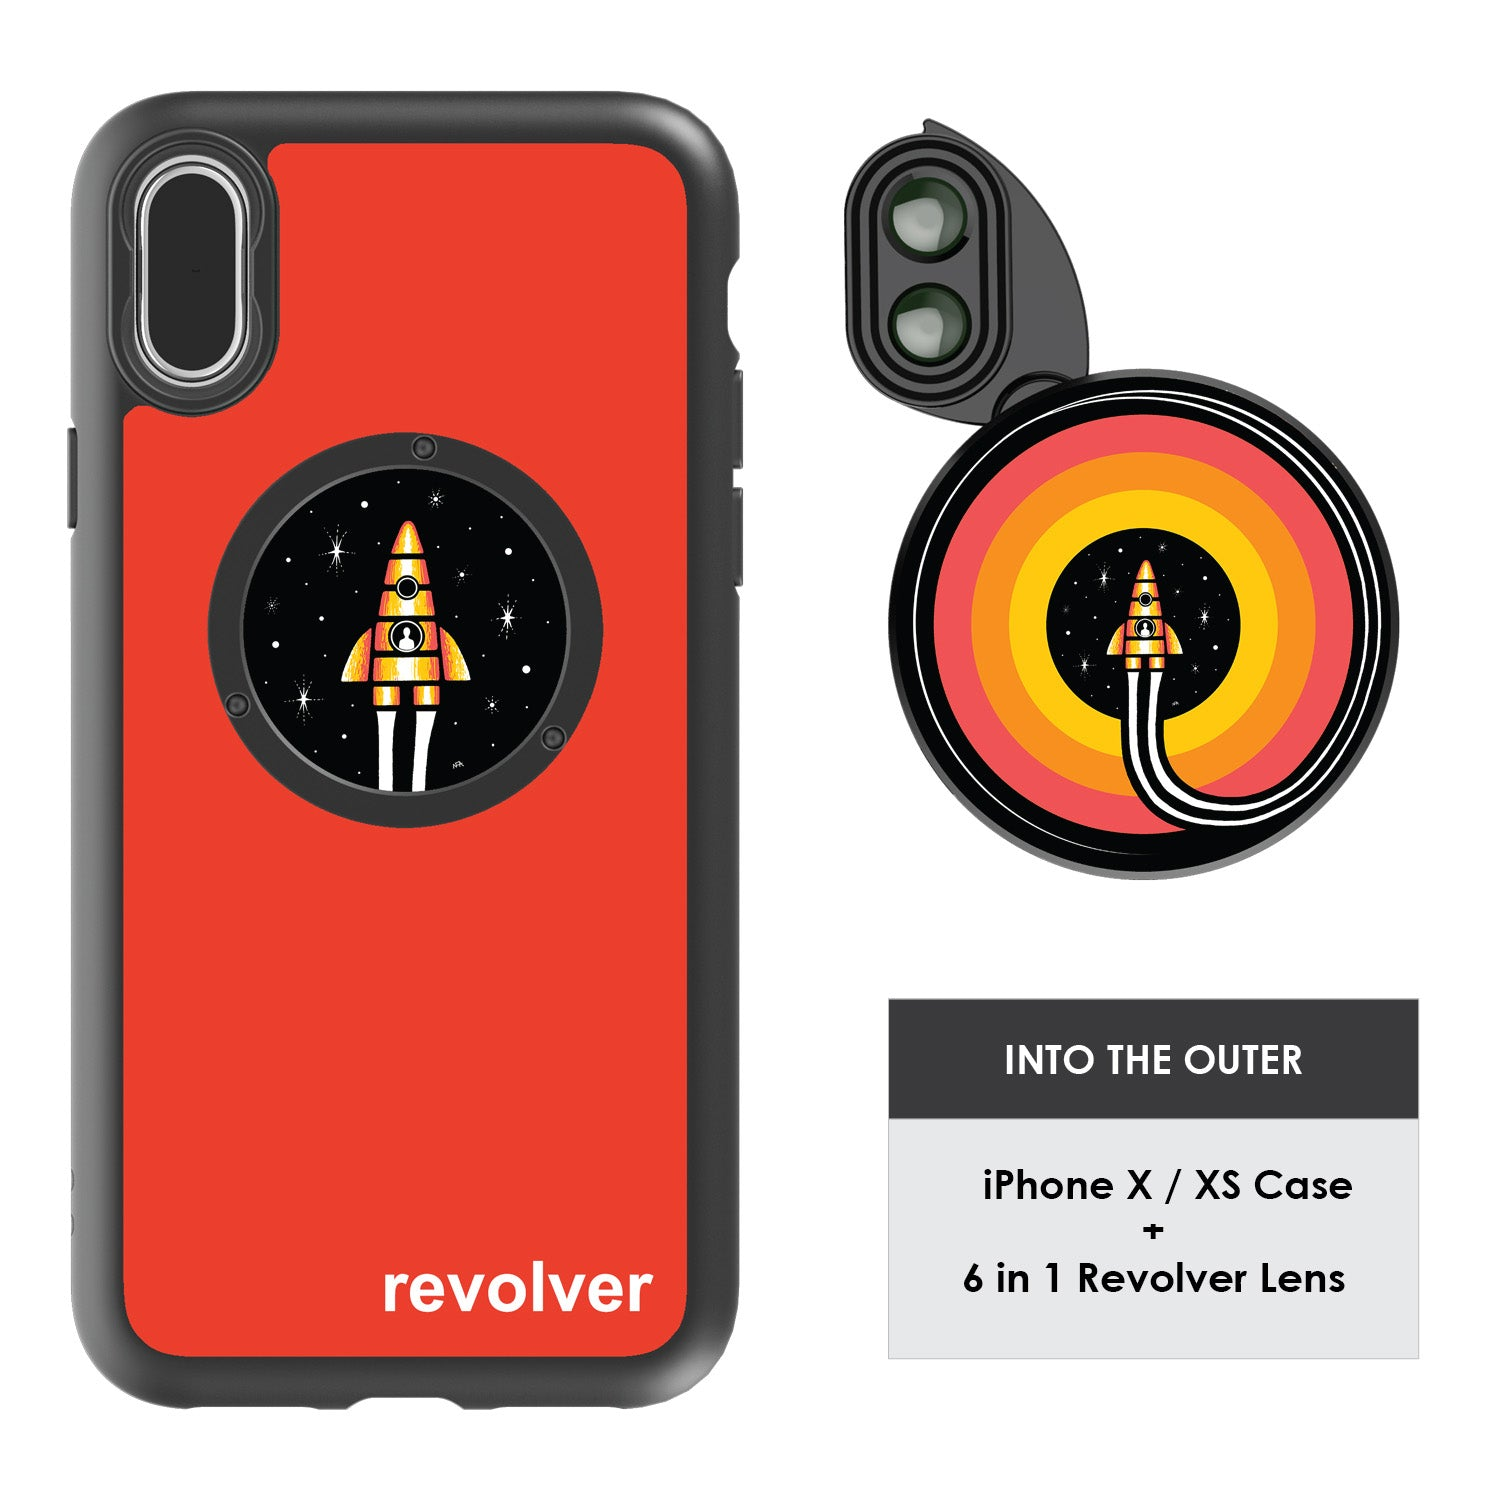 iPhone X / XS Revolver M Series Lens Kit - Into The Outer